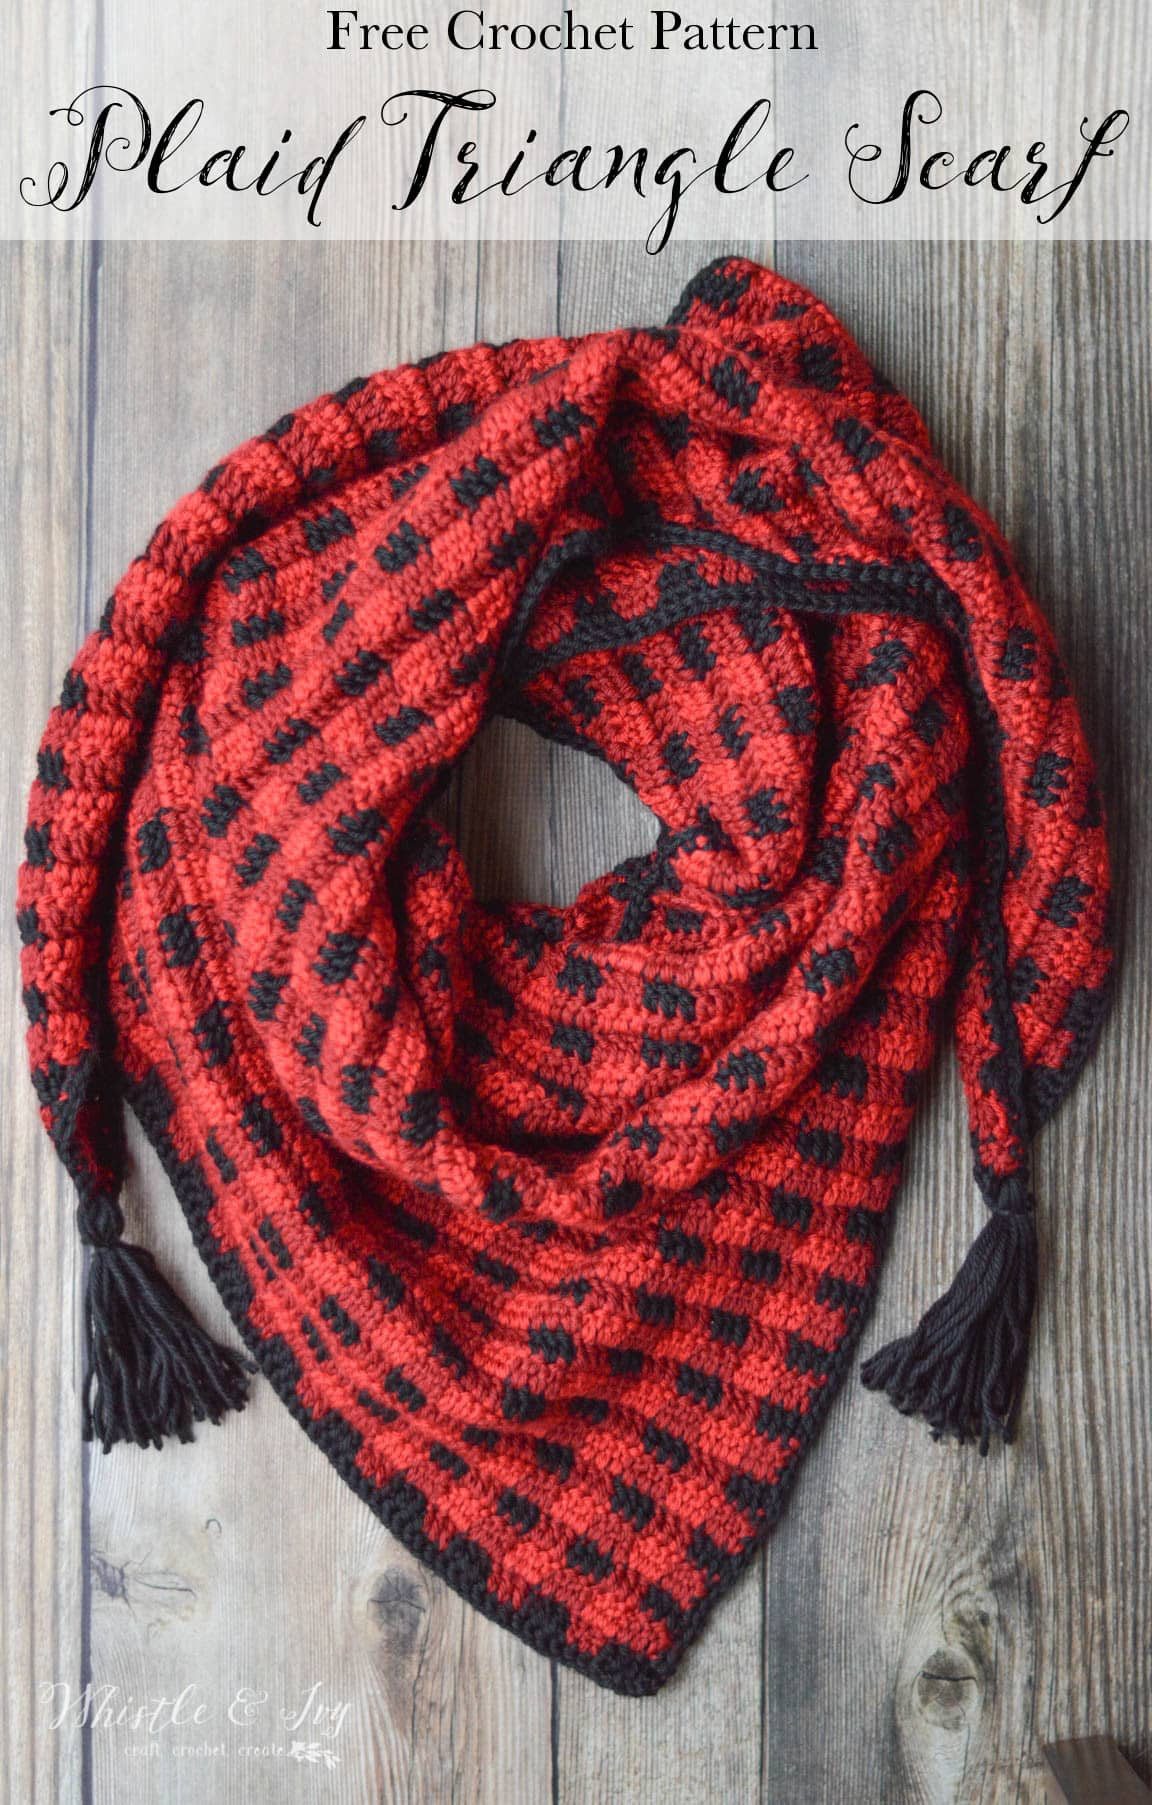 Lovely Crochet Plaid Triangle Scarf Free Crochet Pattern Crochet Triangles Of Charming 42 Images Crochet Triangles